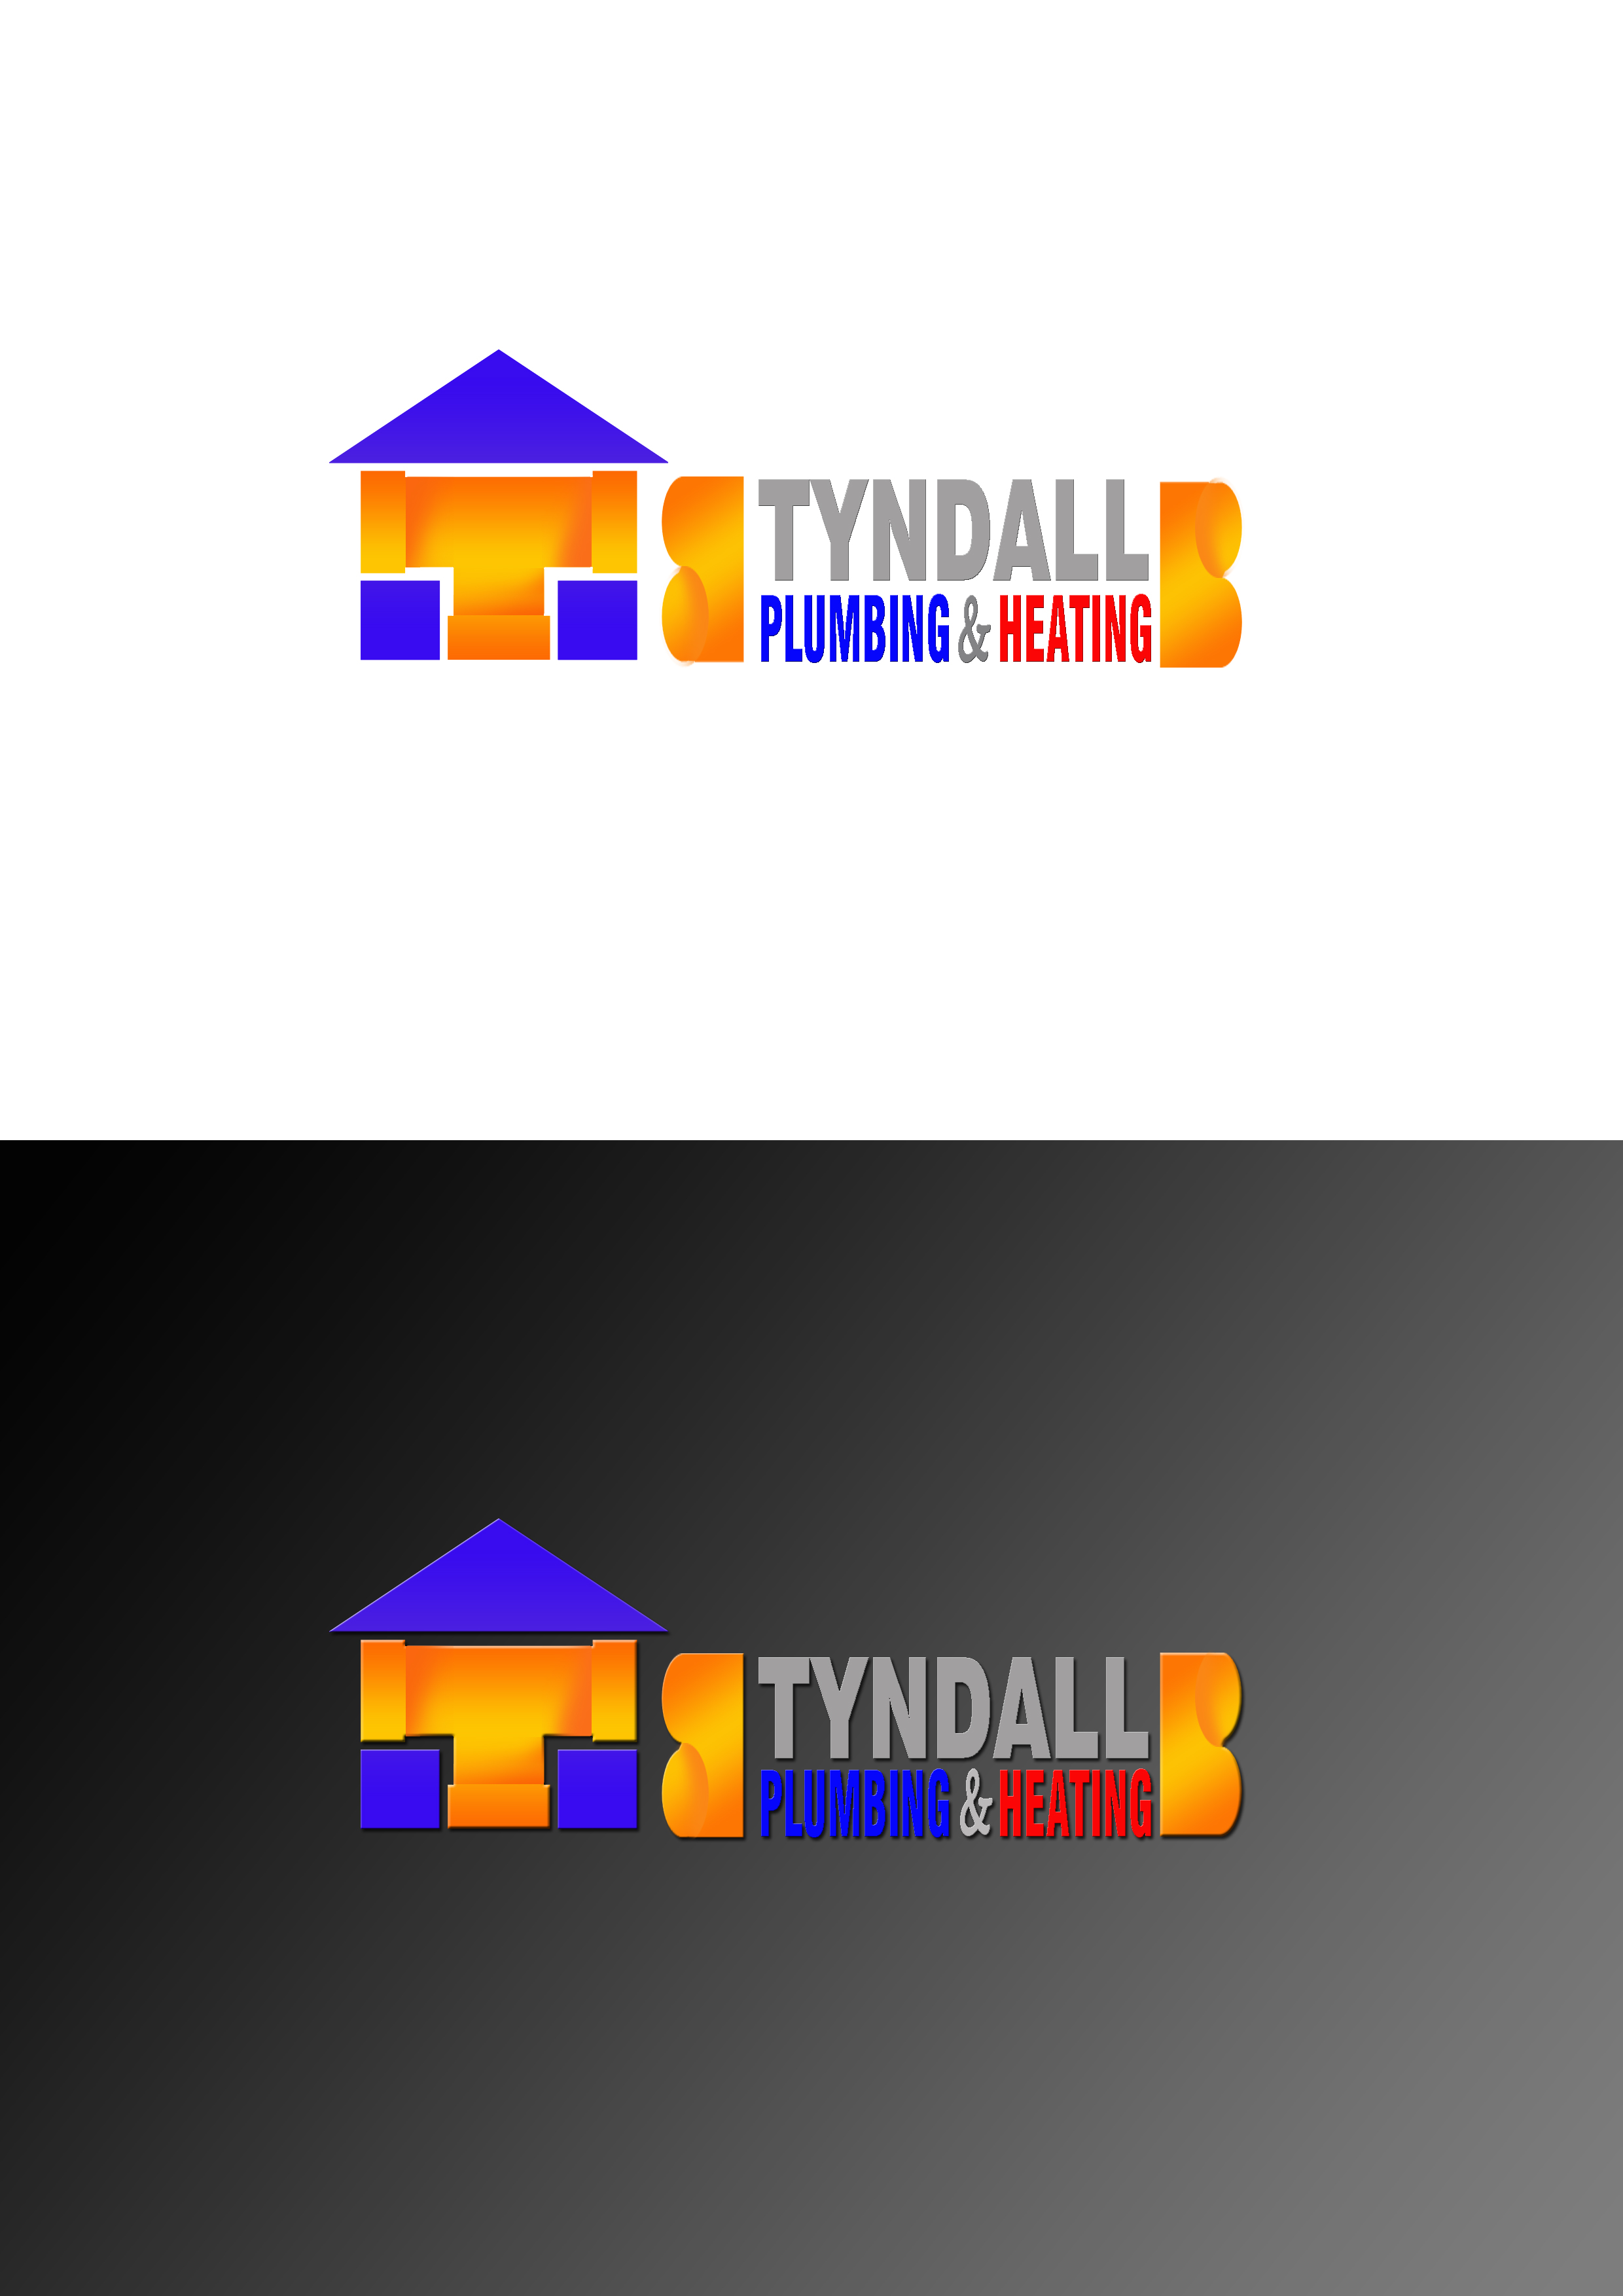 Logo Design by JSDESIGNGROUP - Entry No. 15 in the Logo Design Contest Imaginative Logo Design for Tyndall Plumbing & Heating.